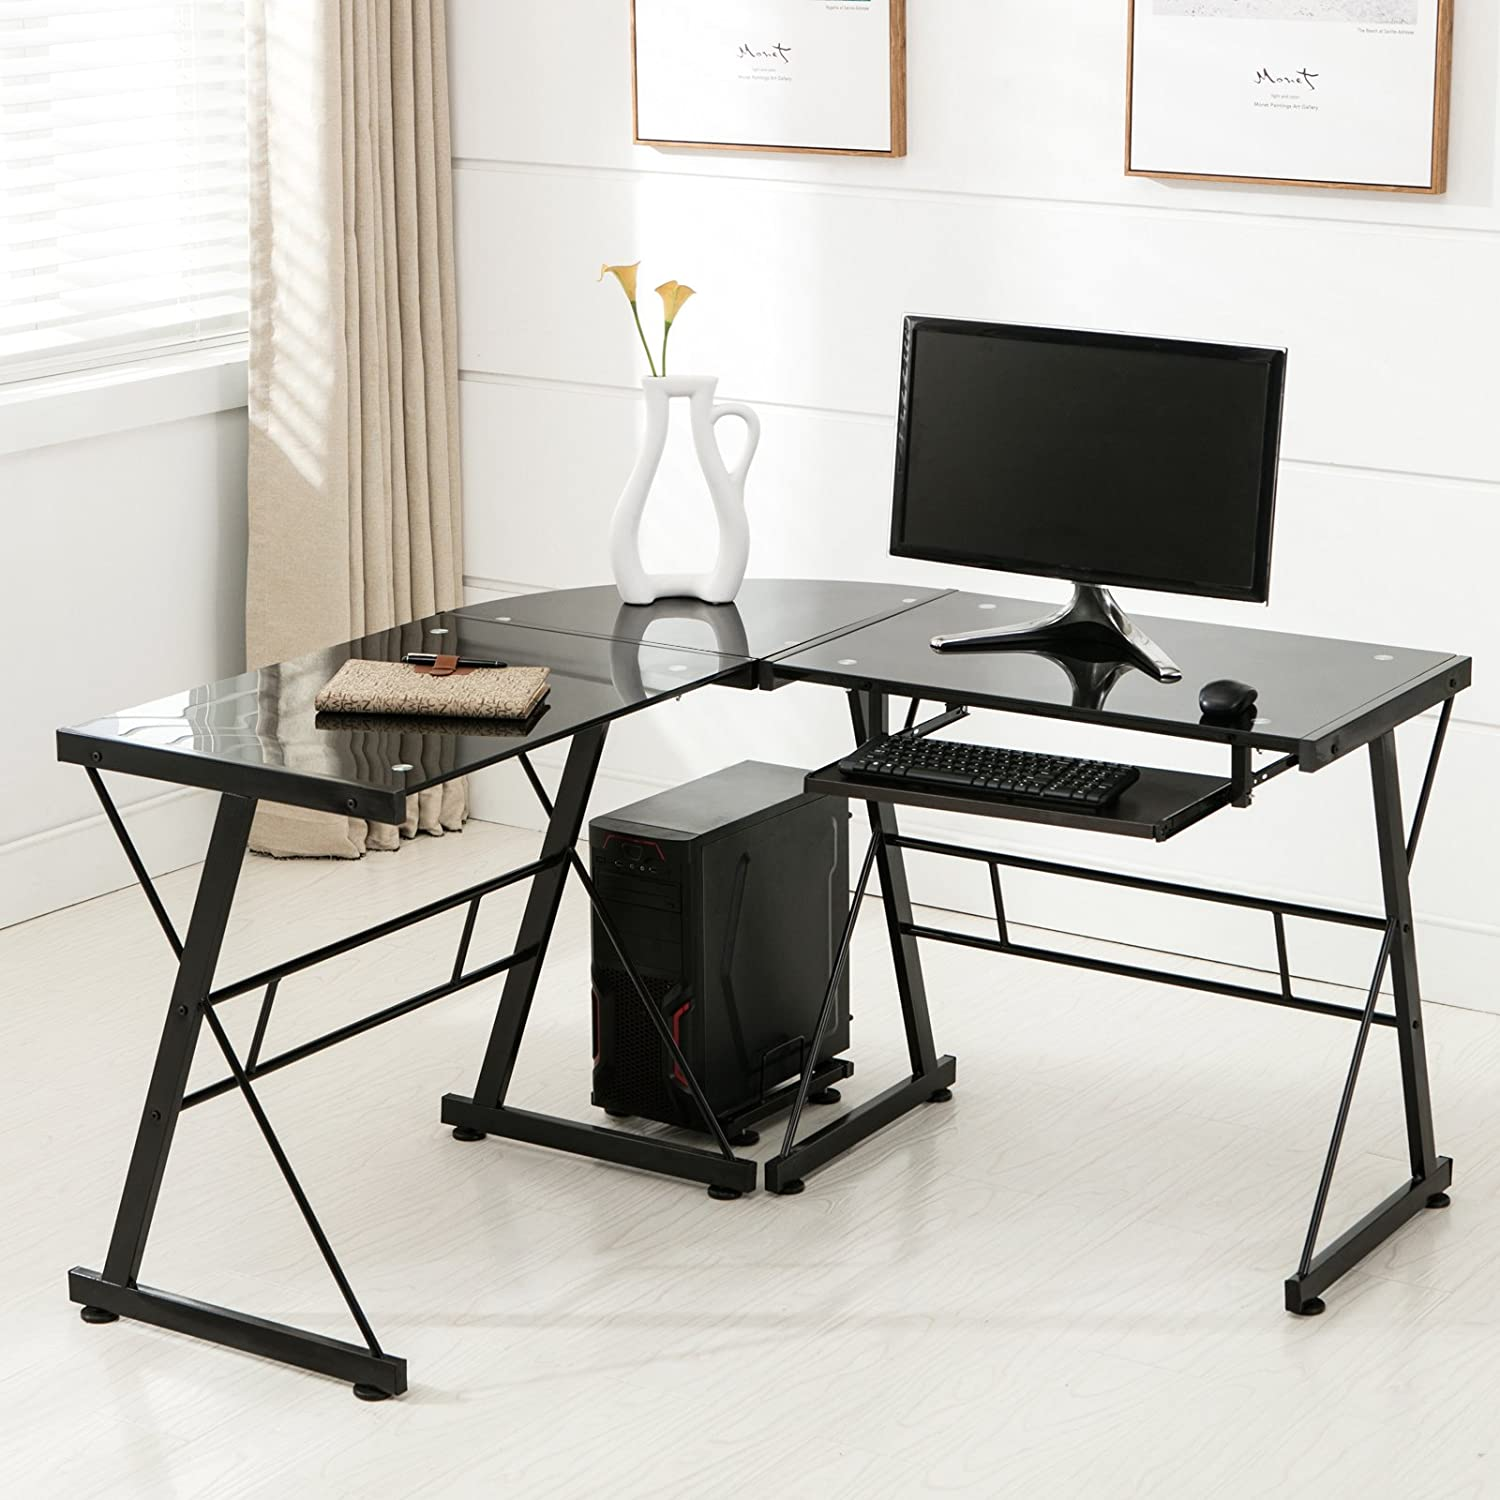 shaped computer desk home office. Amazon.com : Mecor Computer Desk Corner L-Shape Glass Laptop Table Workstation With Keyboard Tray Home Office Furniture Black Products Shaped E